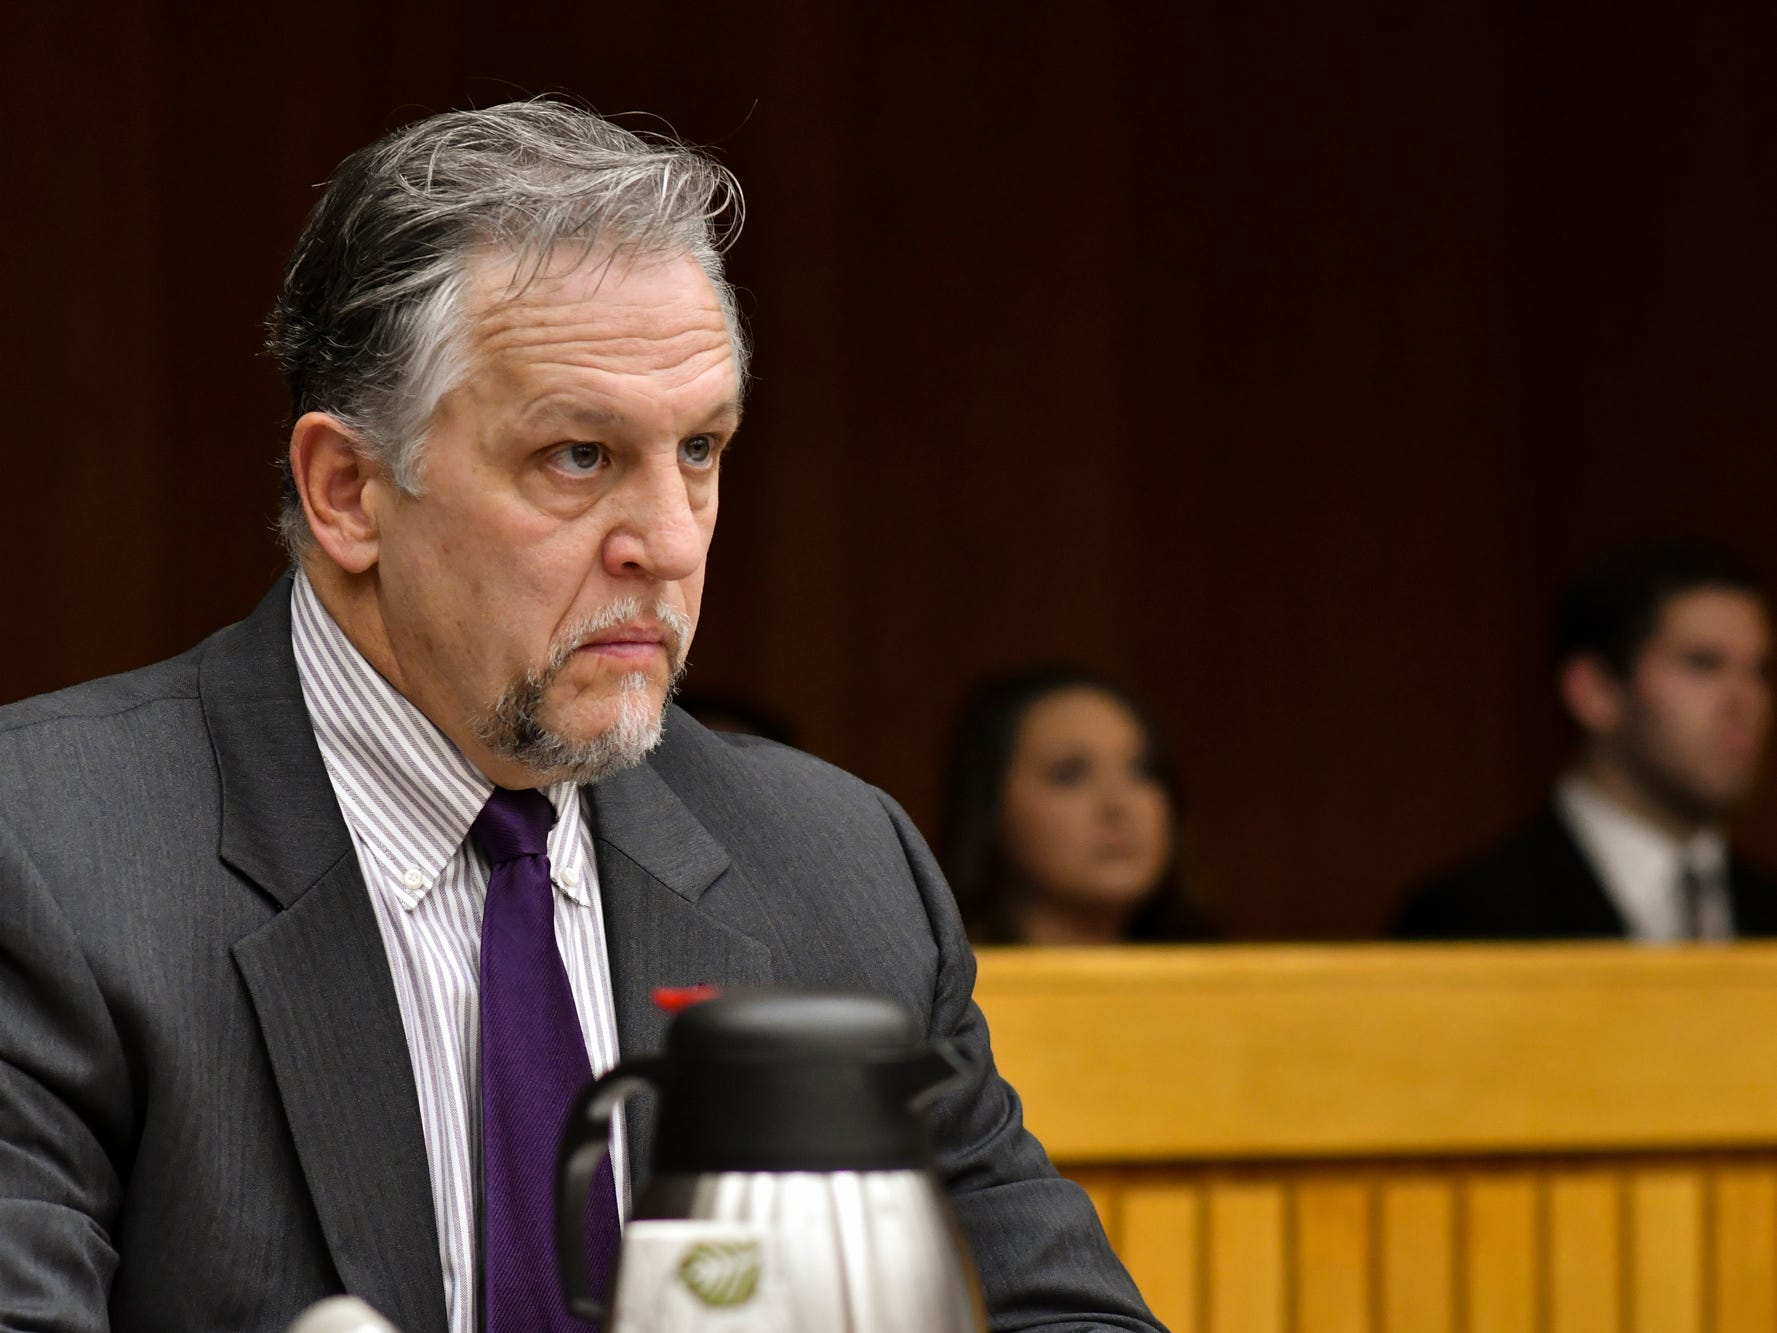 Assistant Attorney General Scott Teter listens as Judge Julie Reincke reads charges against former MSU President Lou Anna Simon, Monday, Nov. 26, 2018, during Simon's arraignment in Eaton County.  Simon faces four charges of lying to police related to the Larry Nassar investigation.  [AP Photo/Matthew Dae Smith/Lansing State Journal]